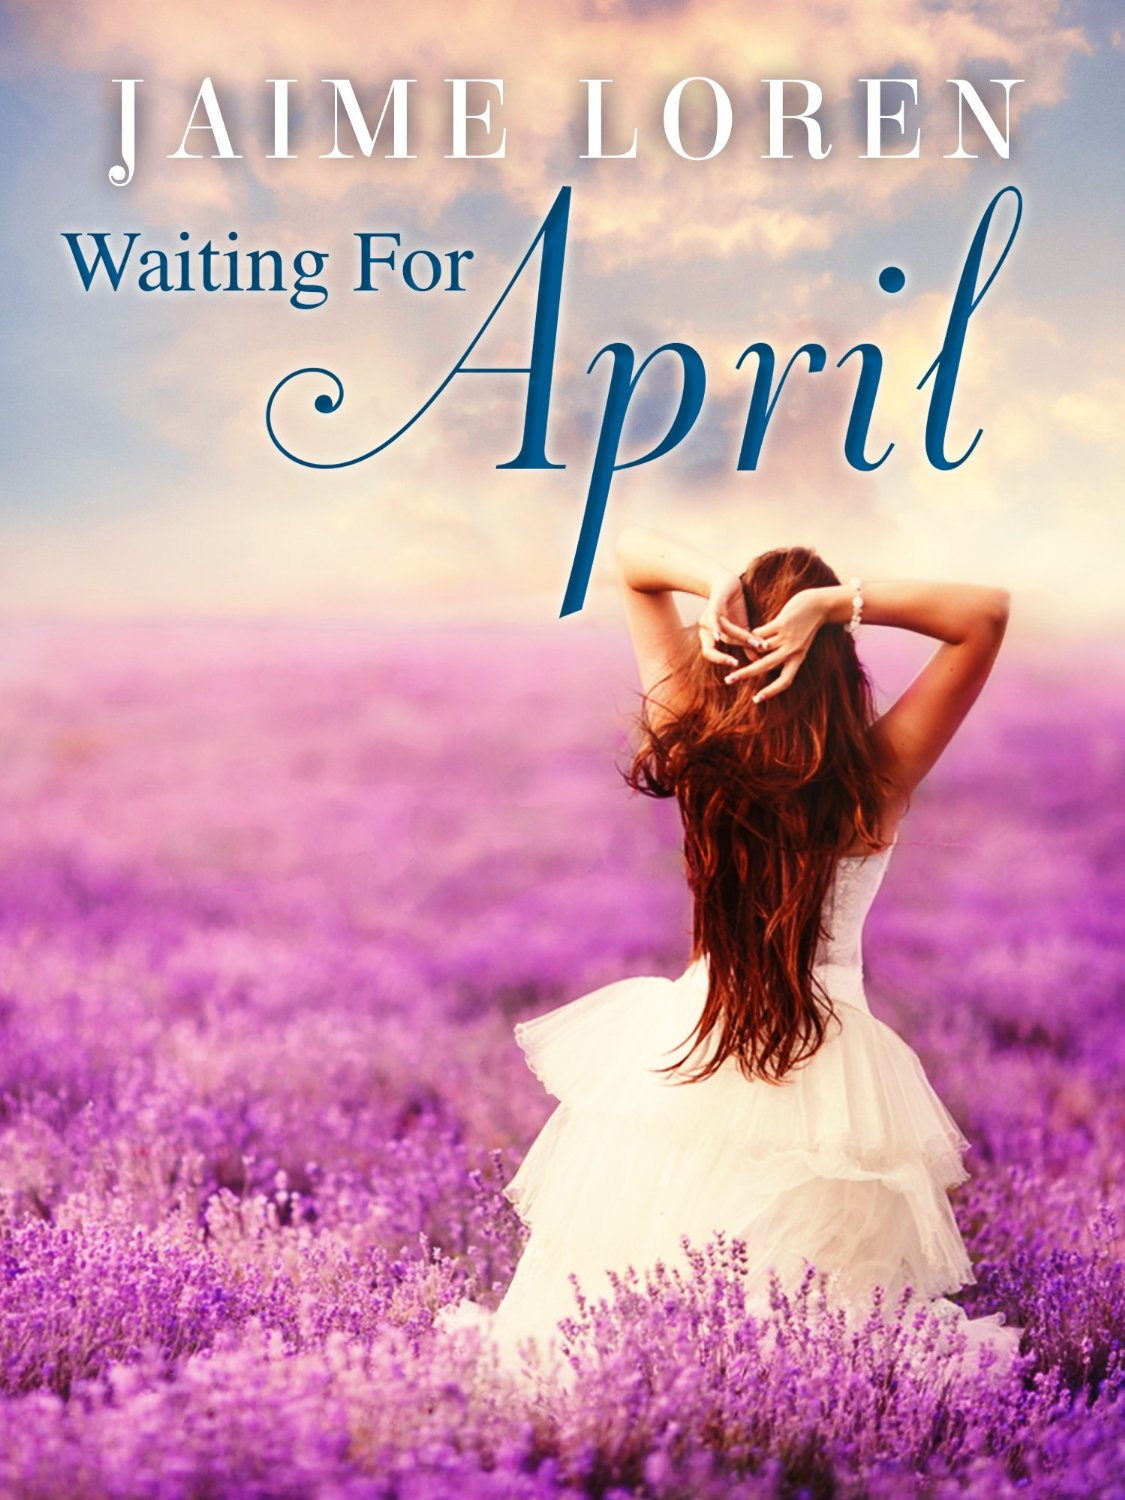 WAITING FOR APRIL by Jaime Loren!